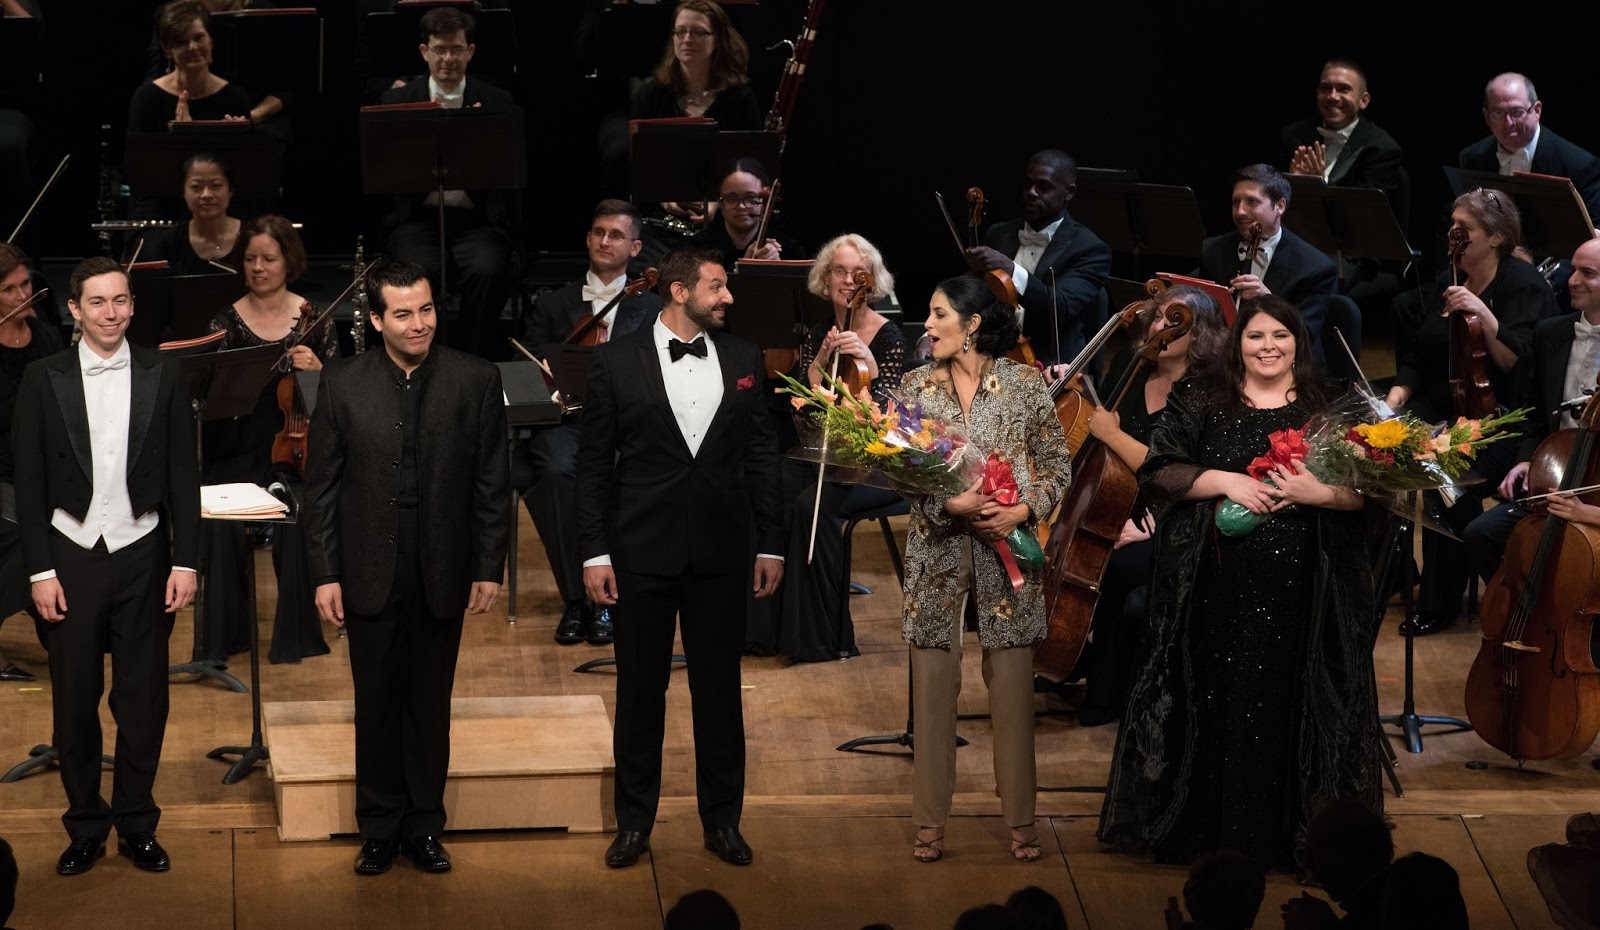 IN REVIEW: Washington Concert Opera 30th Anniversary Concert celebrants - from left to right, tenor JONAS HACKER, baritone JAVIER ARREY, tenor MICHELE ANGELINI, mezzo-soprano VIVICA GENAUX, and soprano ANGELA MEADE [Photo by Don Lassell, © by Washington Concert Opera]